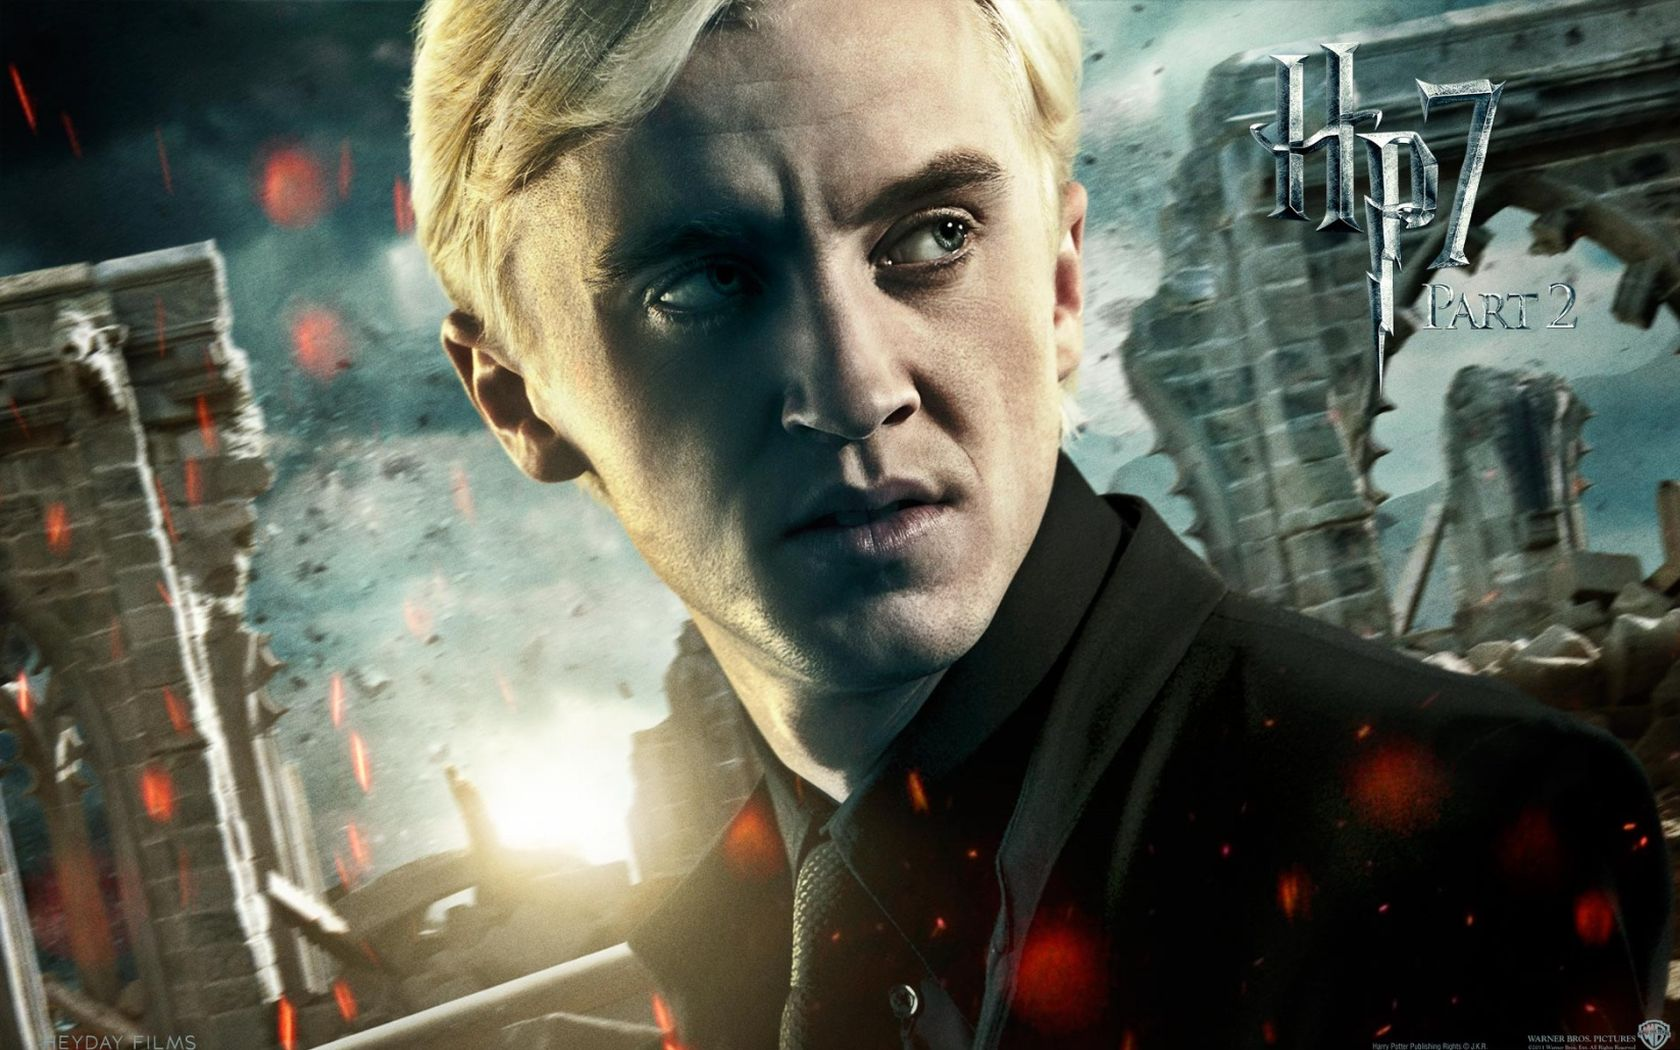 harry_potter_and_the_deathly_hallows_part_2_draco-wallpaper-1680x1050.jpg